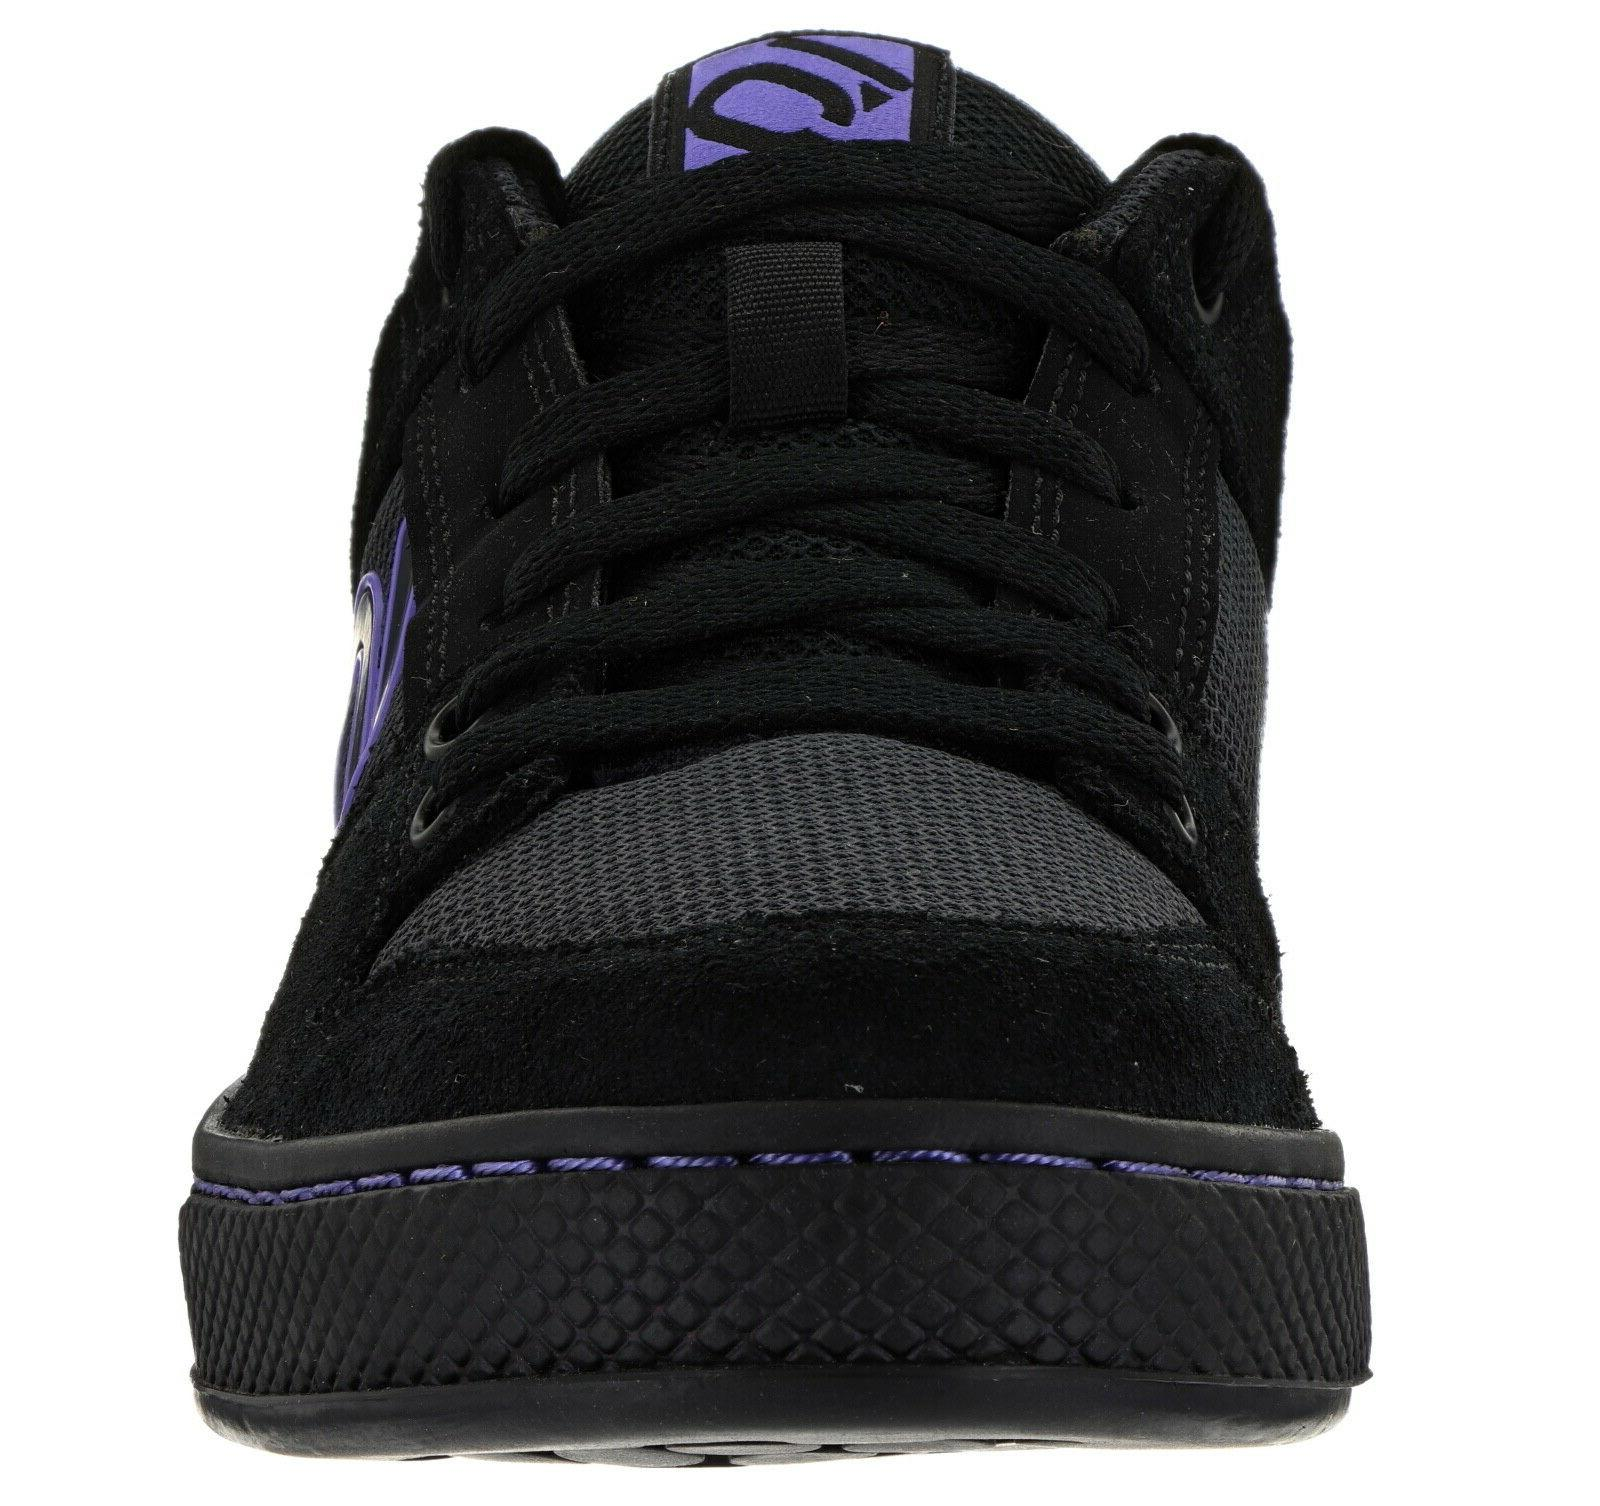 Five Adidas Athletic Mountain Shoes 5314